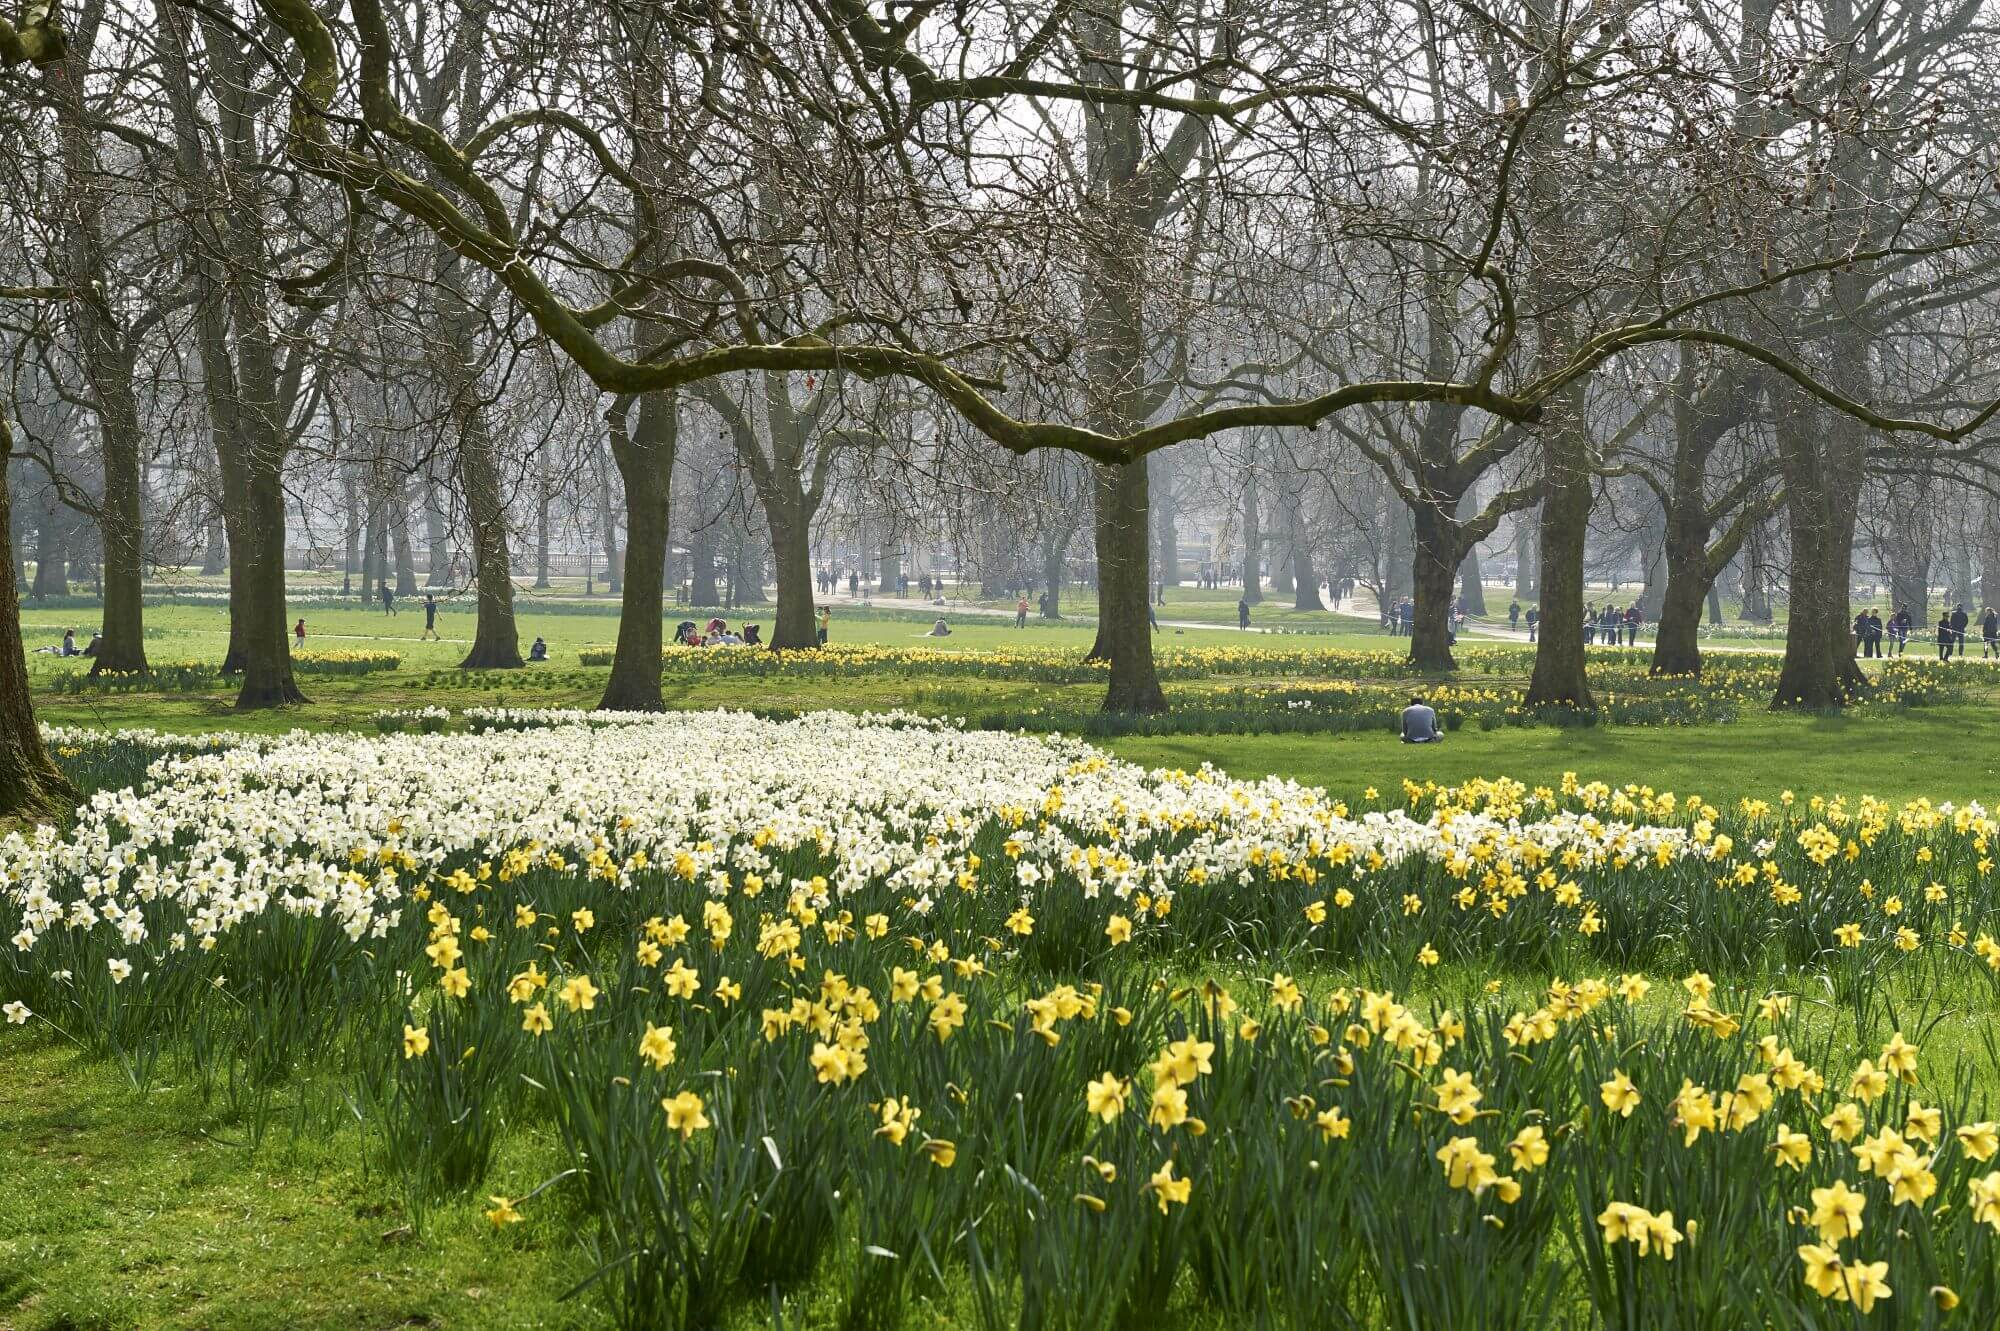 Daffodils in The Green Park.